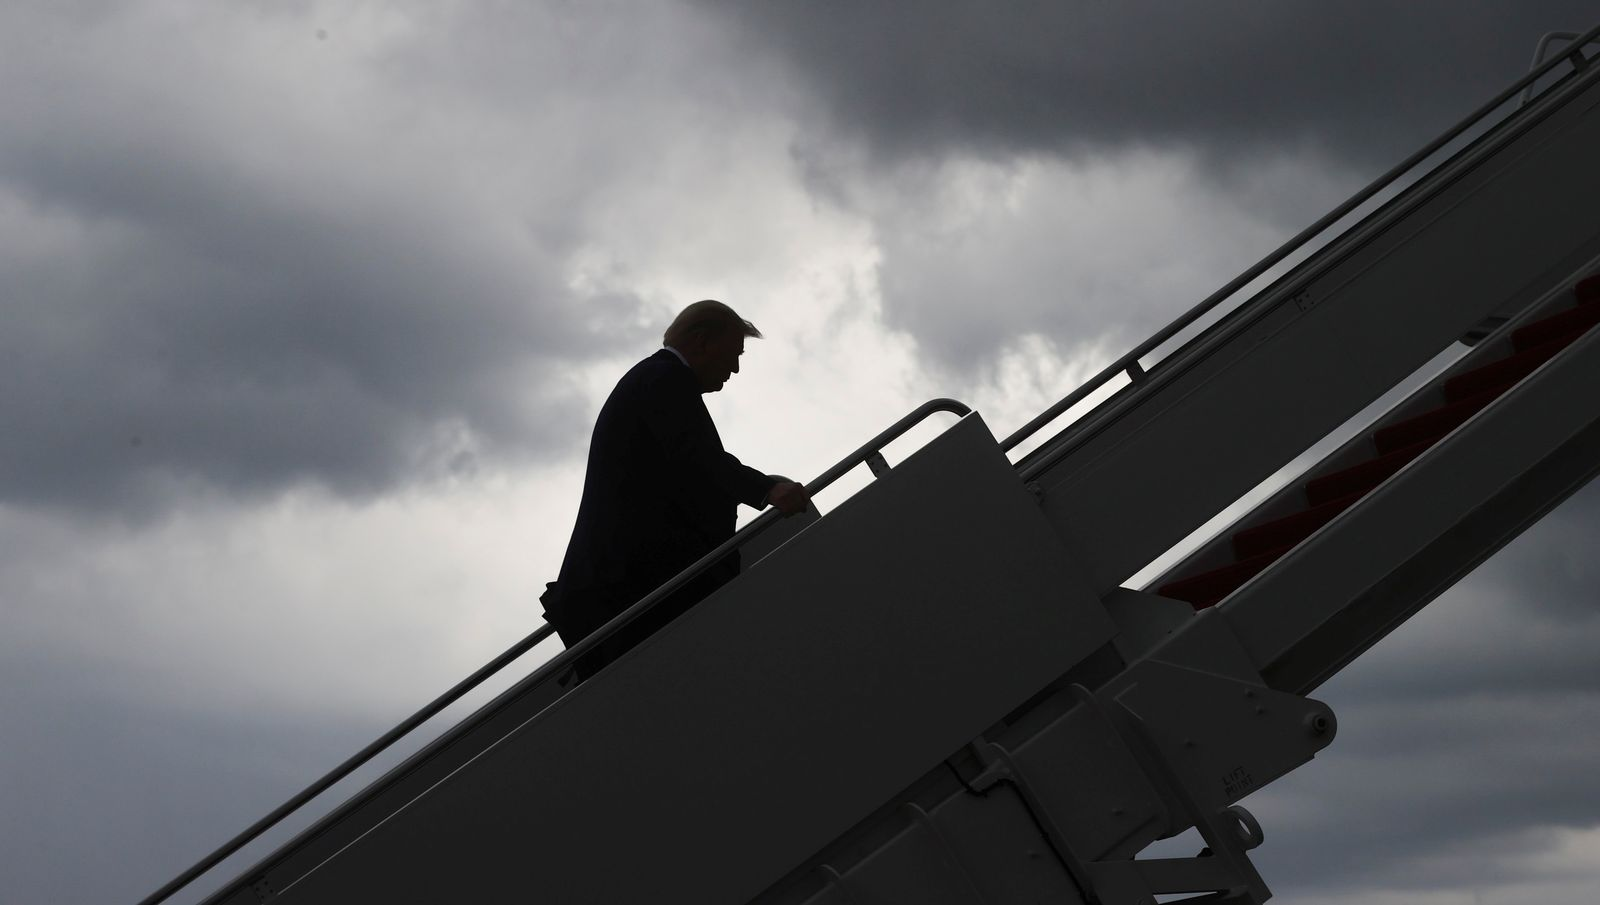 U.S. President Trump departs Washington for travel to Texas at Joint Base Andrews in Maryland